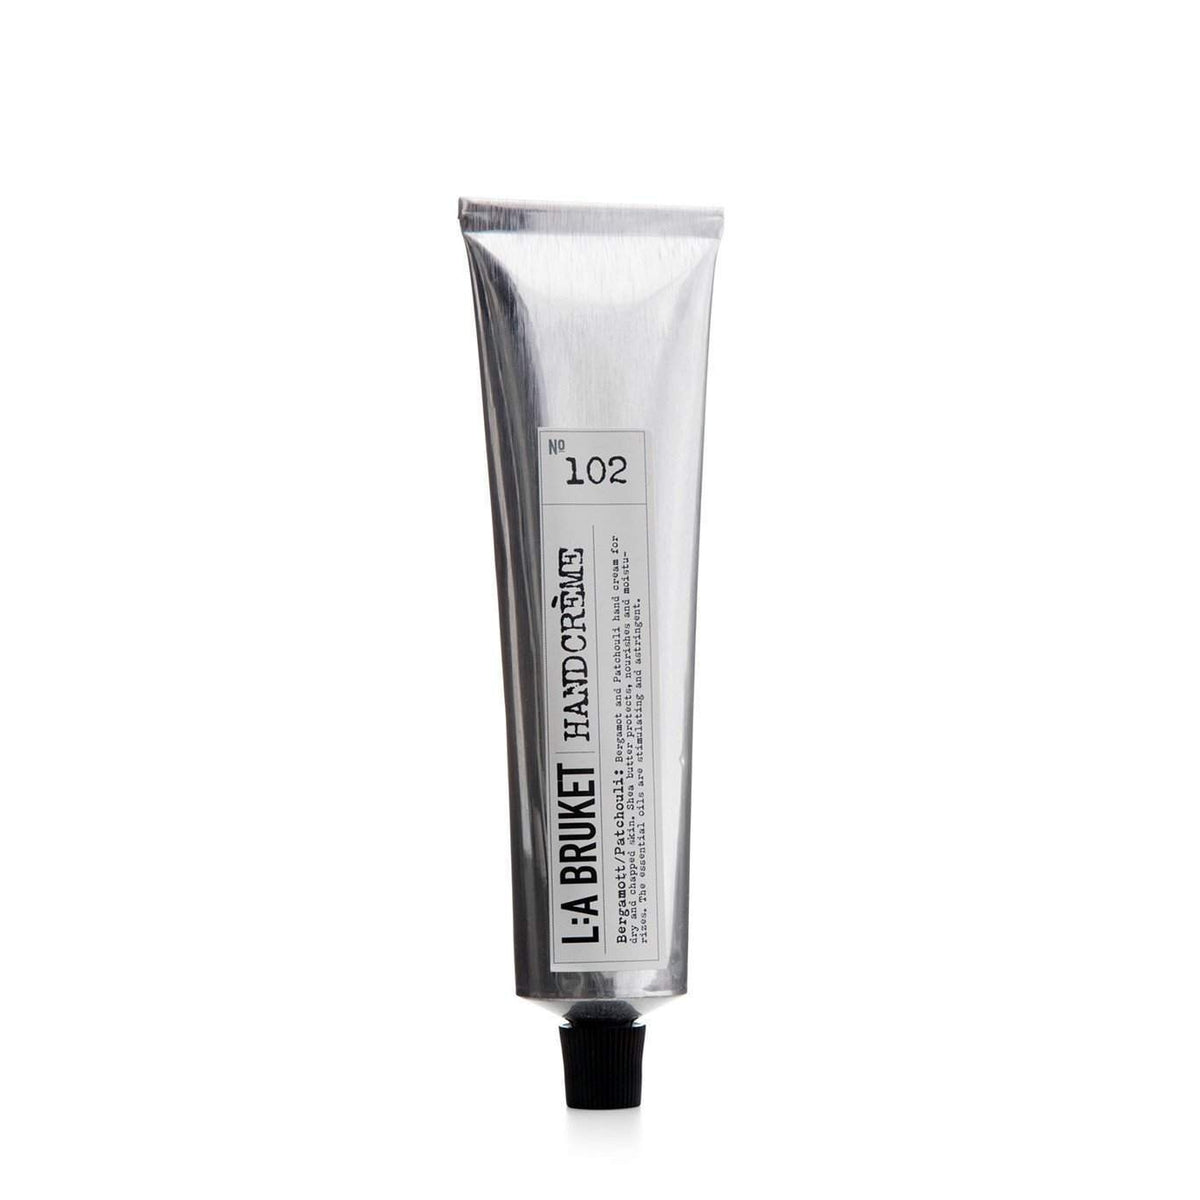 L:A Bruket No. 102 Hand and Foot Cream Bergamot Patchouli 70 ml-L:A Bruket-Oak Manor Fragrances